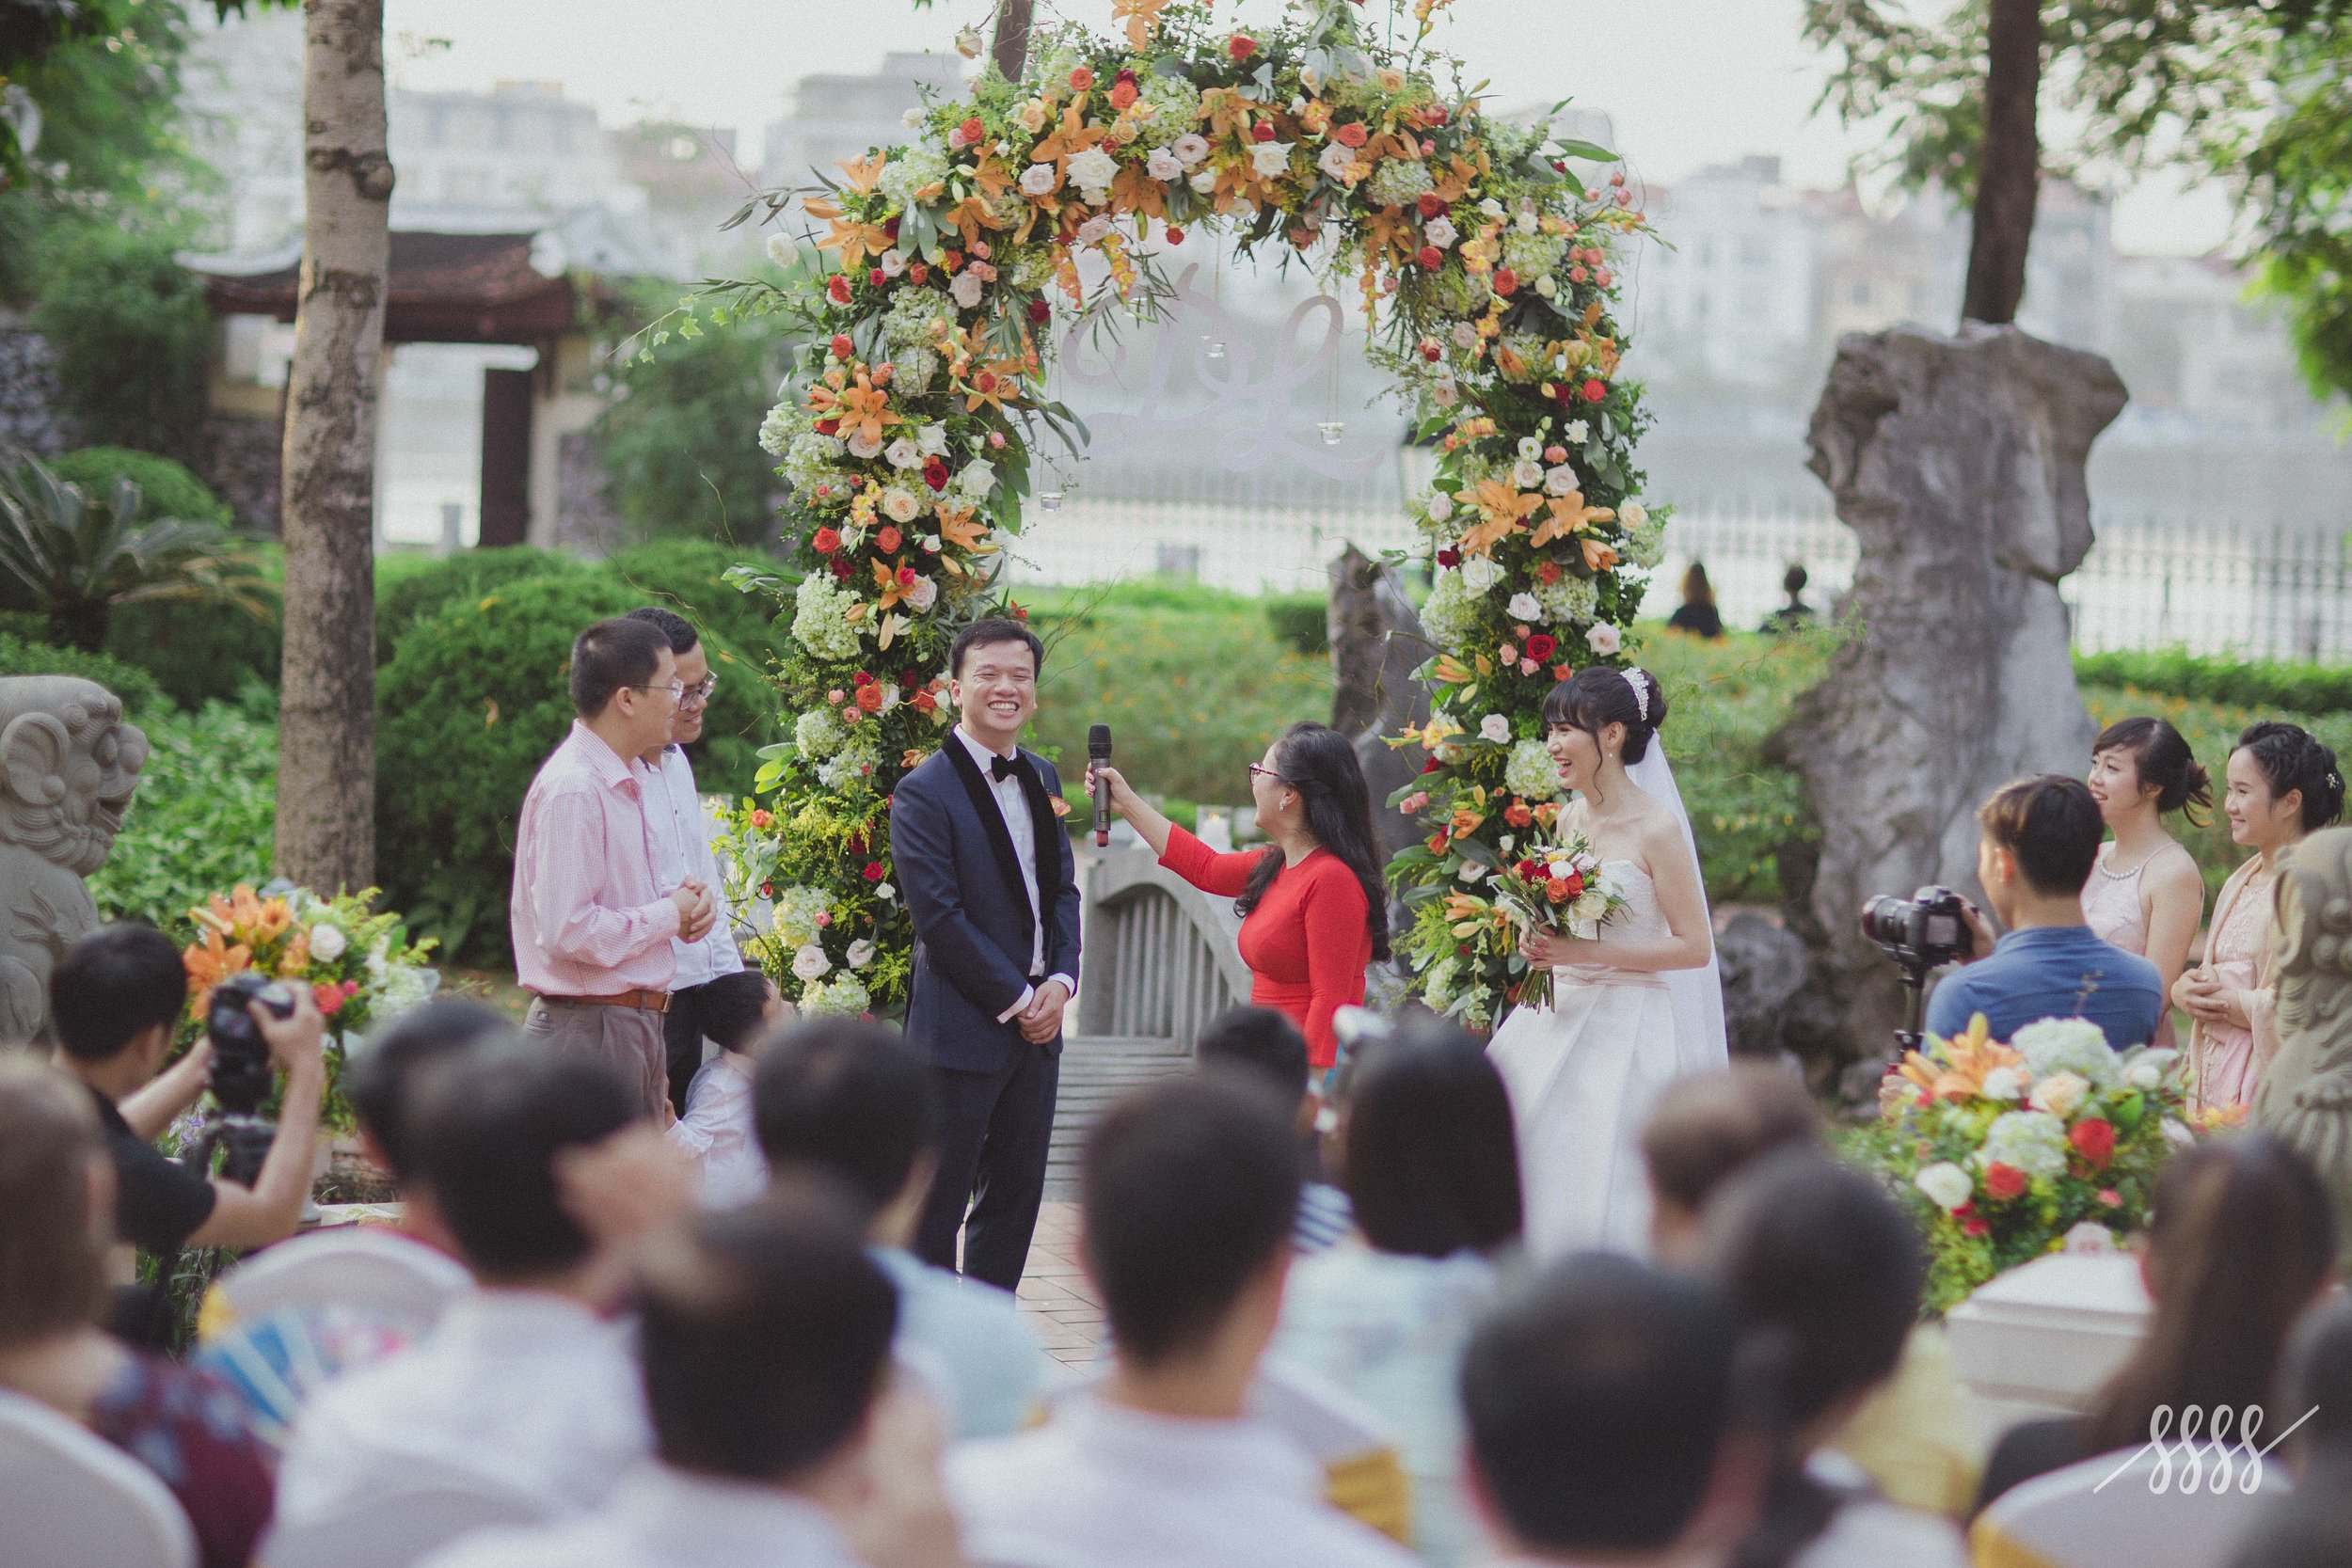 """LY & DUNG - """"Dear Ngoc, Giang & The F Lab team,Although I'm still a bit tired after our wonderful wedding yesterday, I feel the need to write to you immediately. Our celebration was beyond my every imagination and I know The F Lab played an important part to make it happen...."""